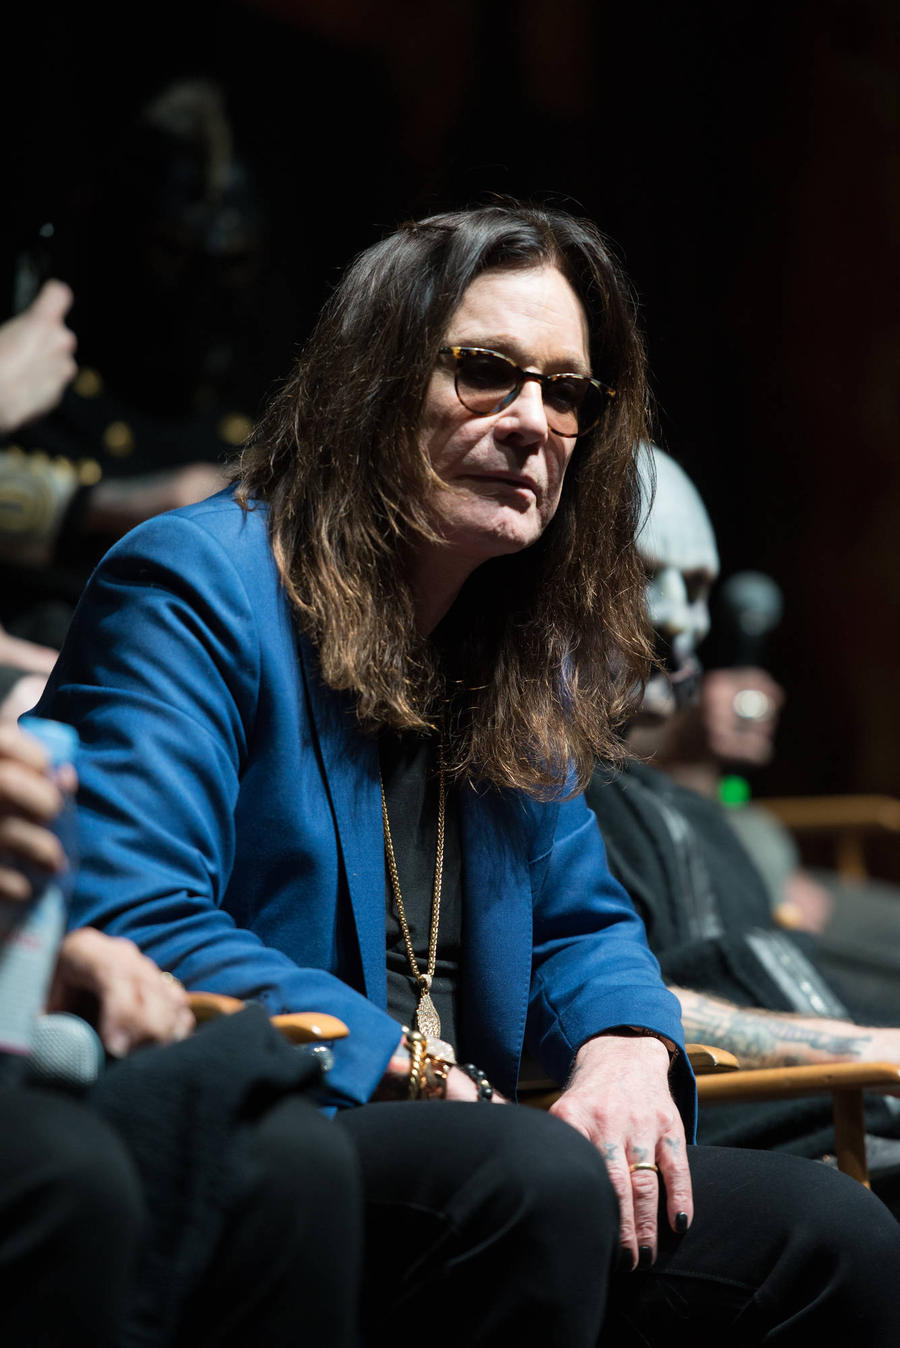 Ozzy Osbourne Stares At Death Following Bowie, Prince & Lemmy Tragedies